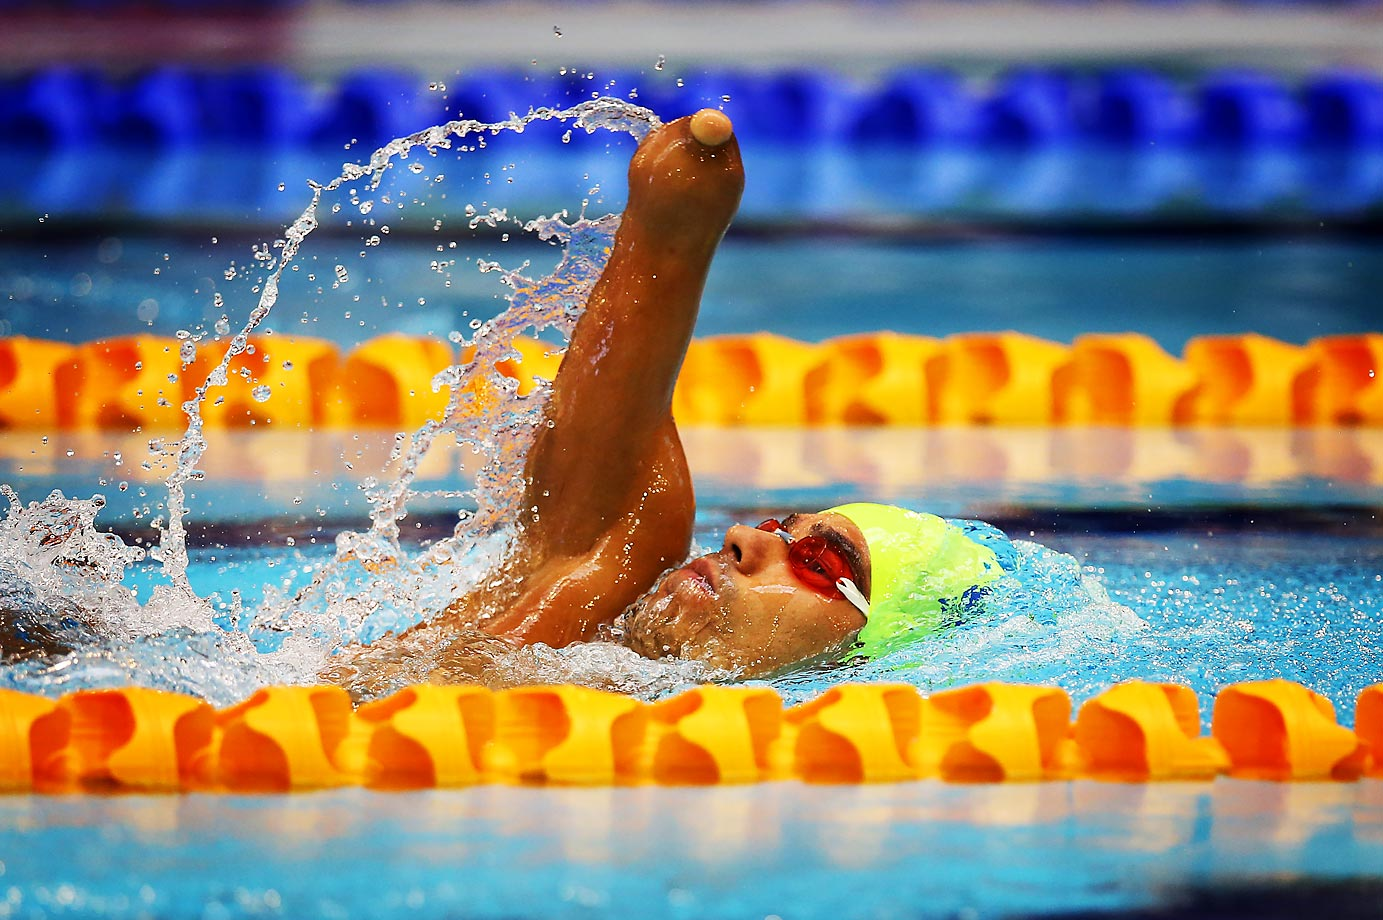 Daniel Dias of Brazil competes in the 50m Backstroke S5 during Day One of The IPC Swimming World Championships in Glasgow, Scotland.